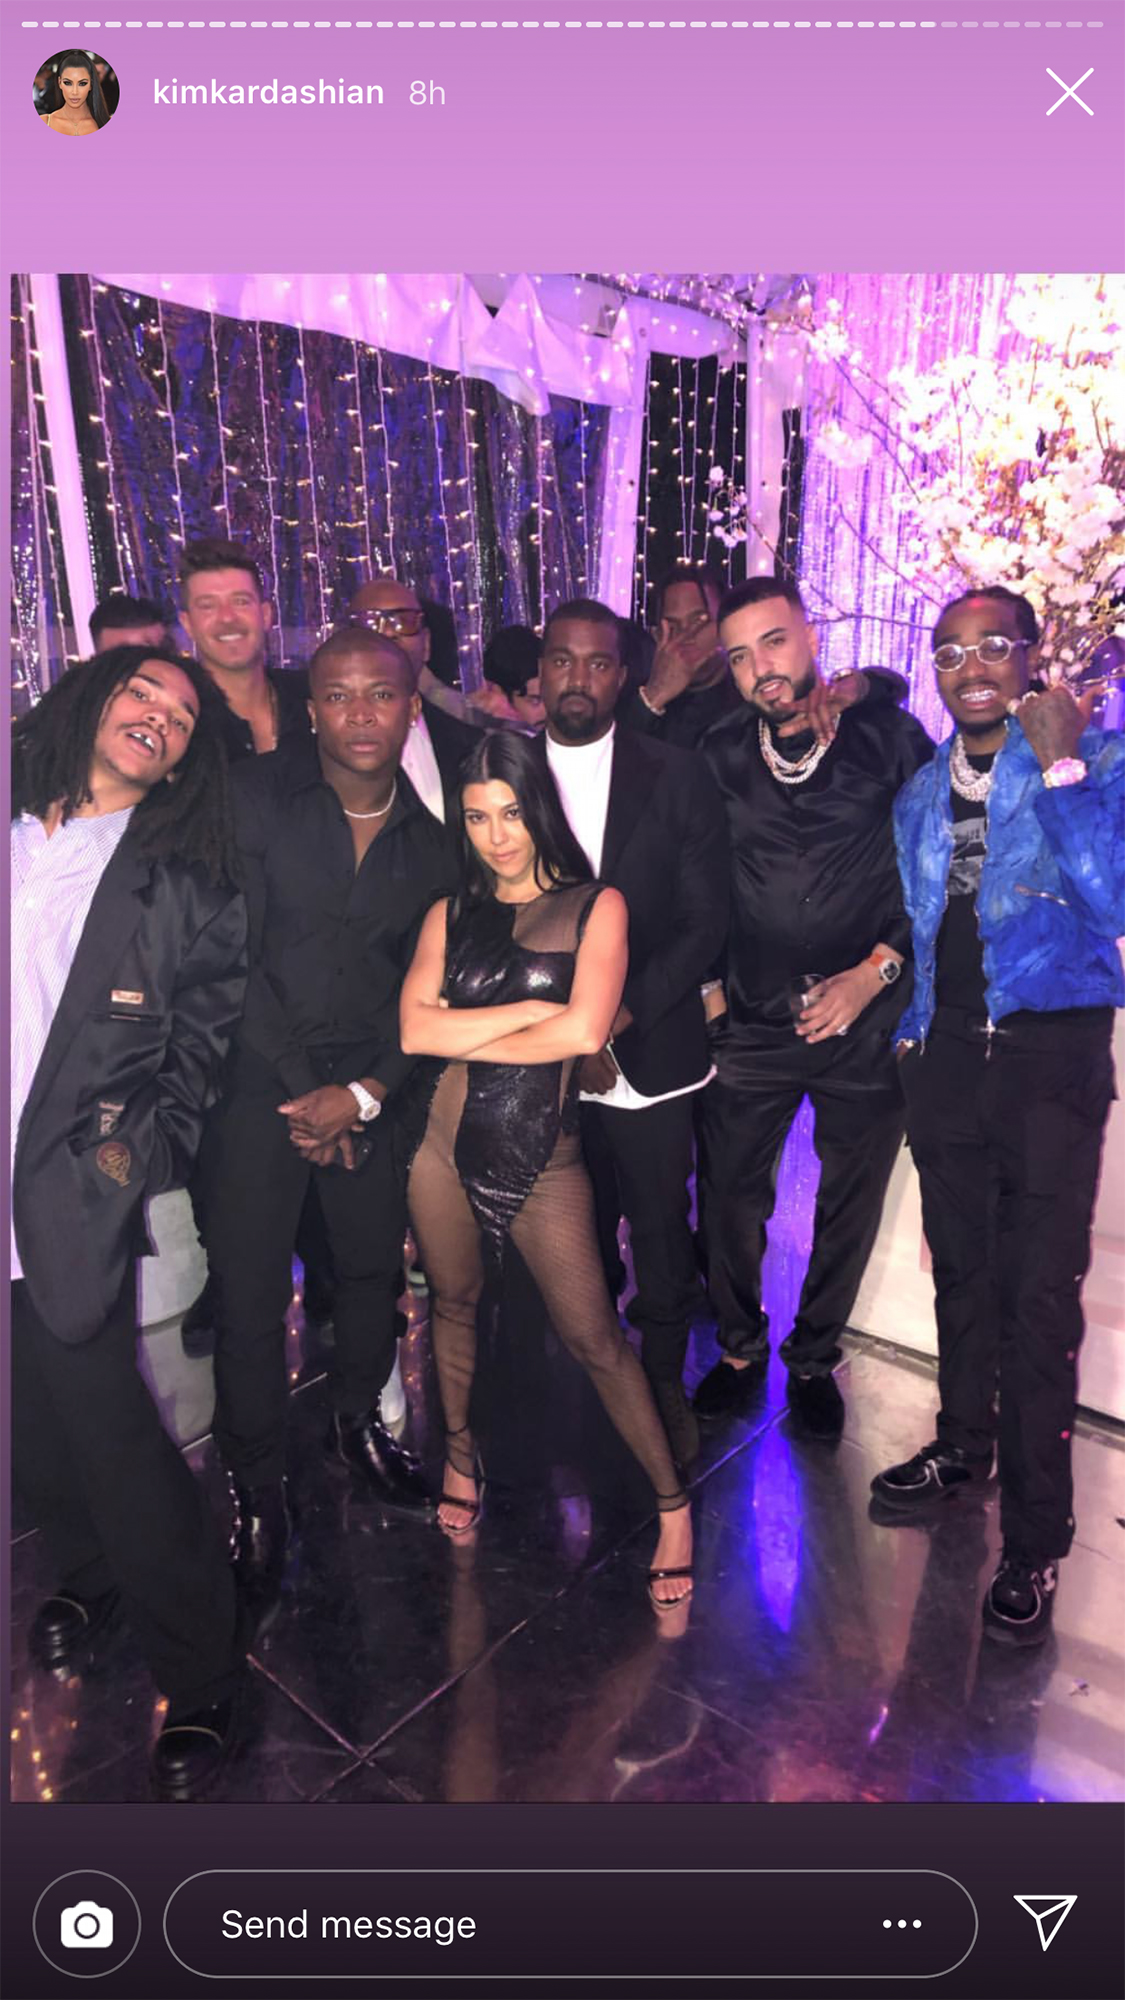 Kourtney Kardashian Birthday Party - The birthday girl posed with Thicke, Khloé's ex French Montana, Kim's husband, Kanye West , and her own recently rumored love connection Luka Sabbat at the party.